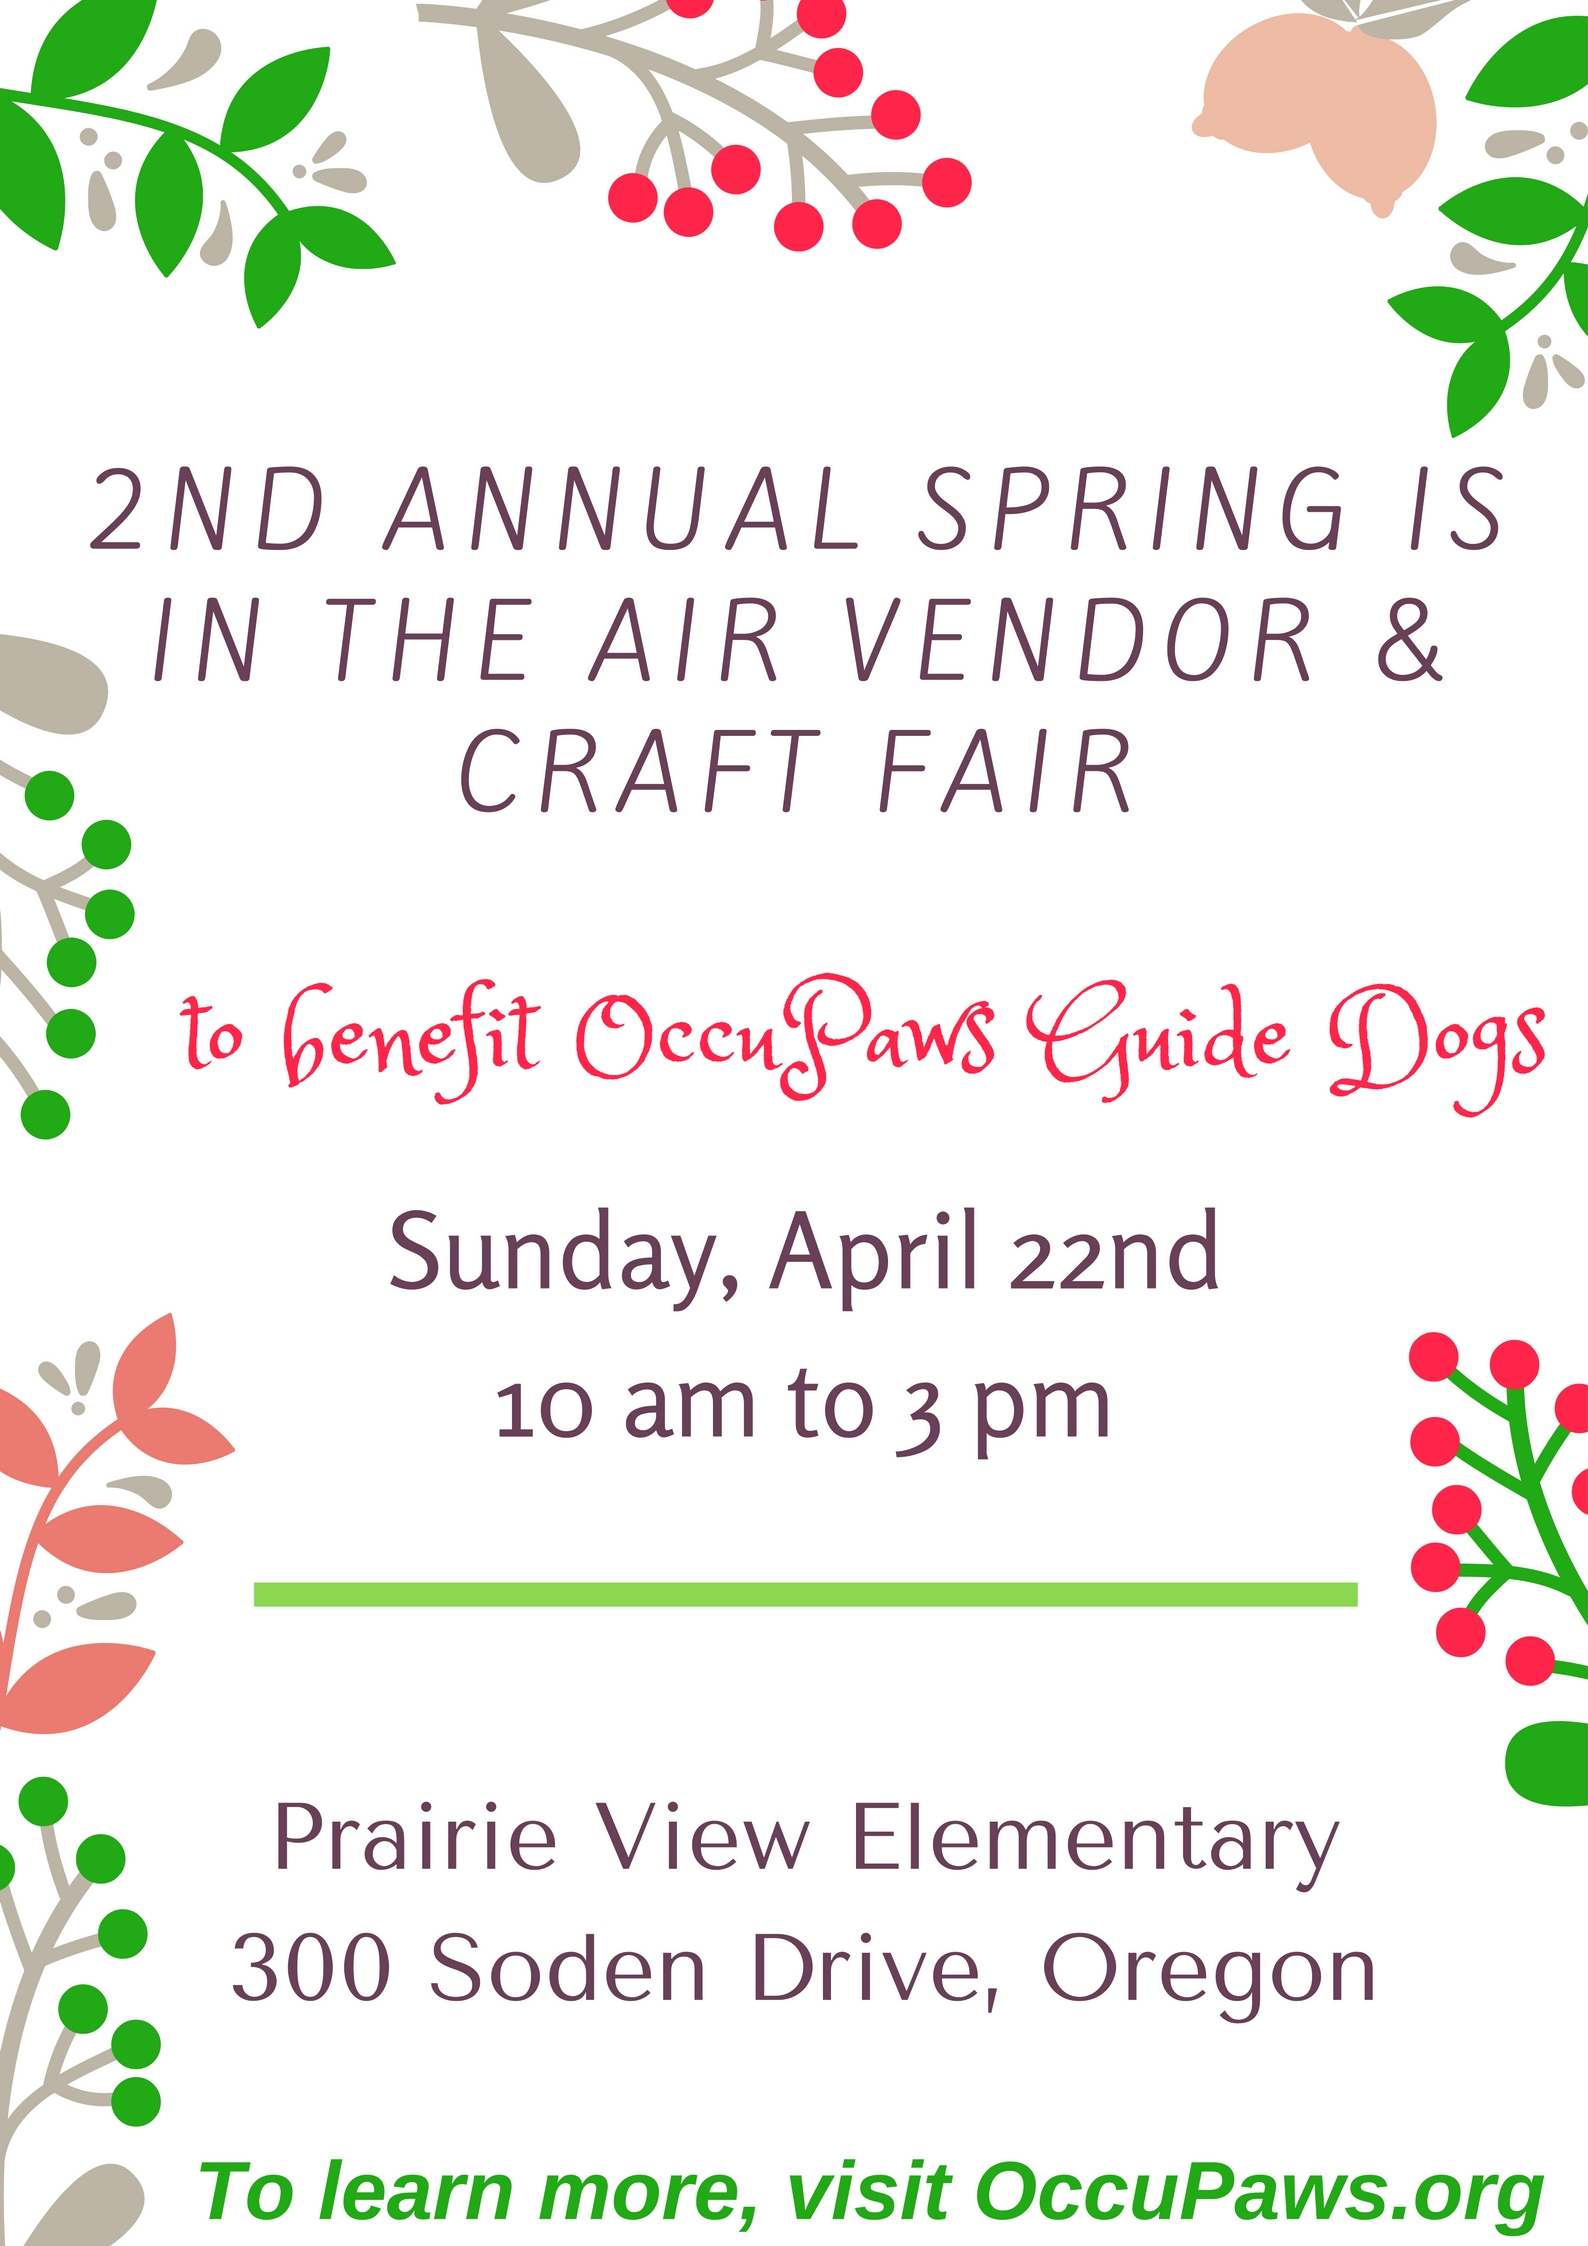 2nd Annual Spring is in the Air Vendor & Craft Fair @ Prairie View Elementary School | Oregon | Wisconsin | United States